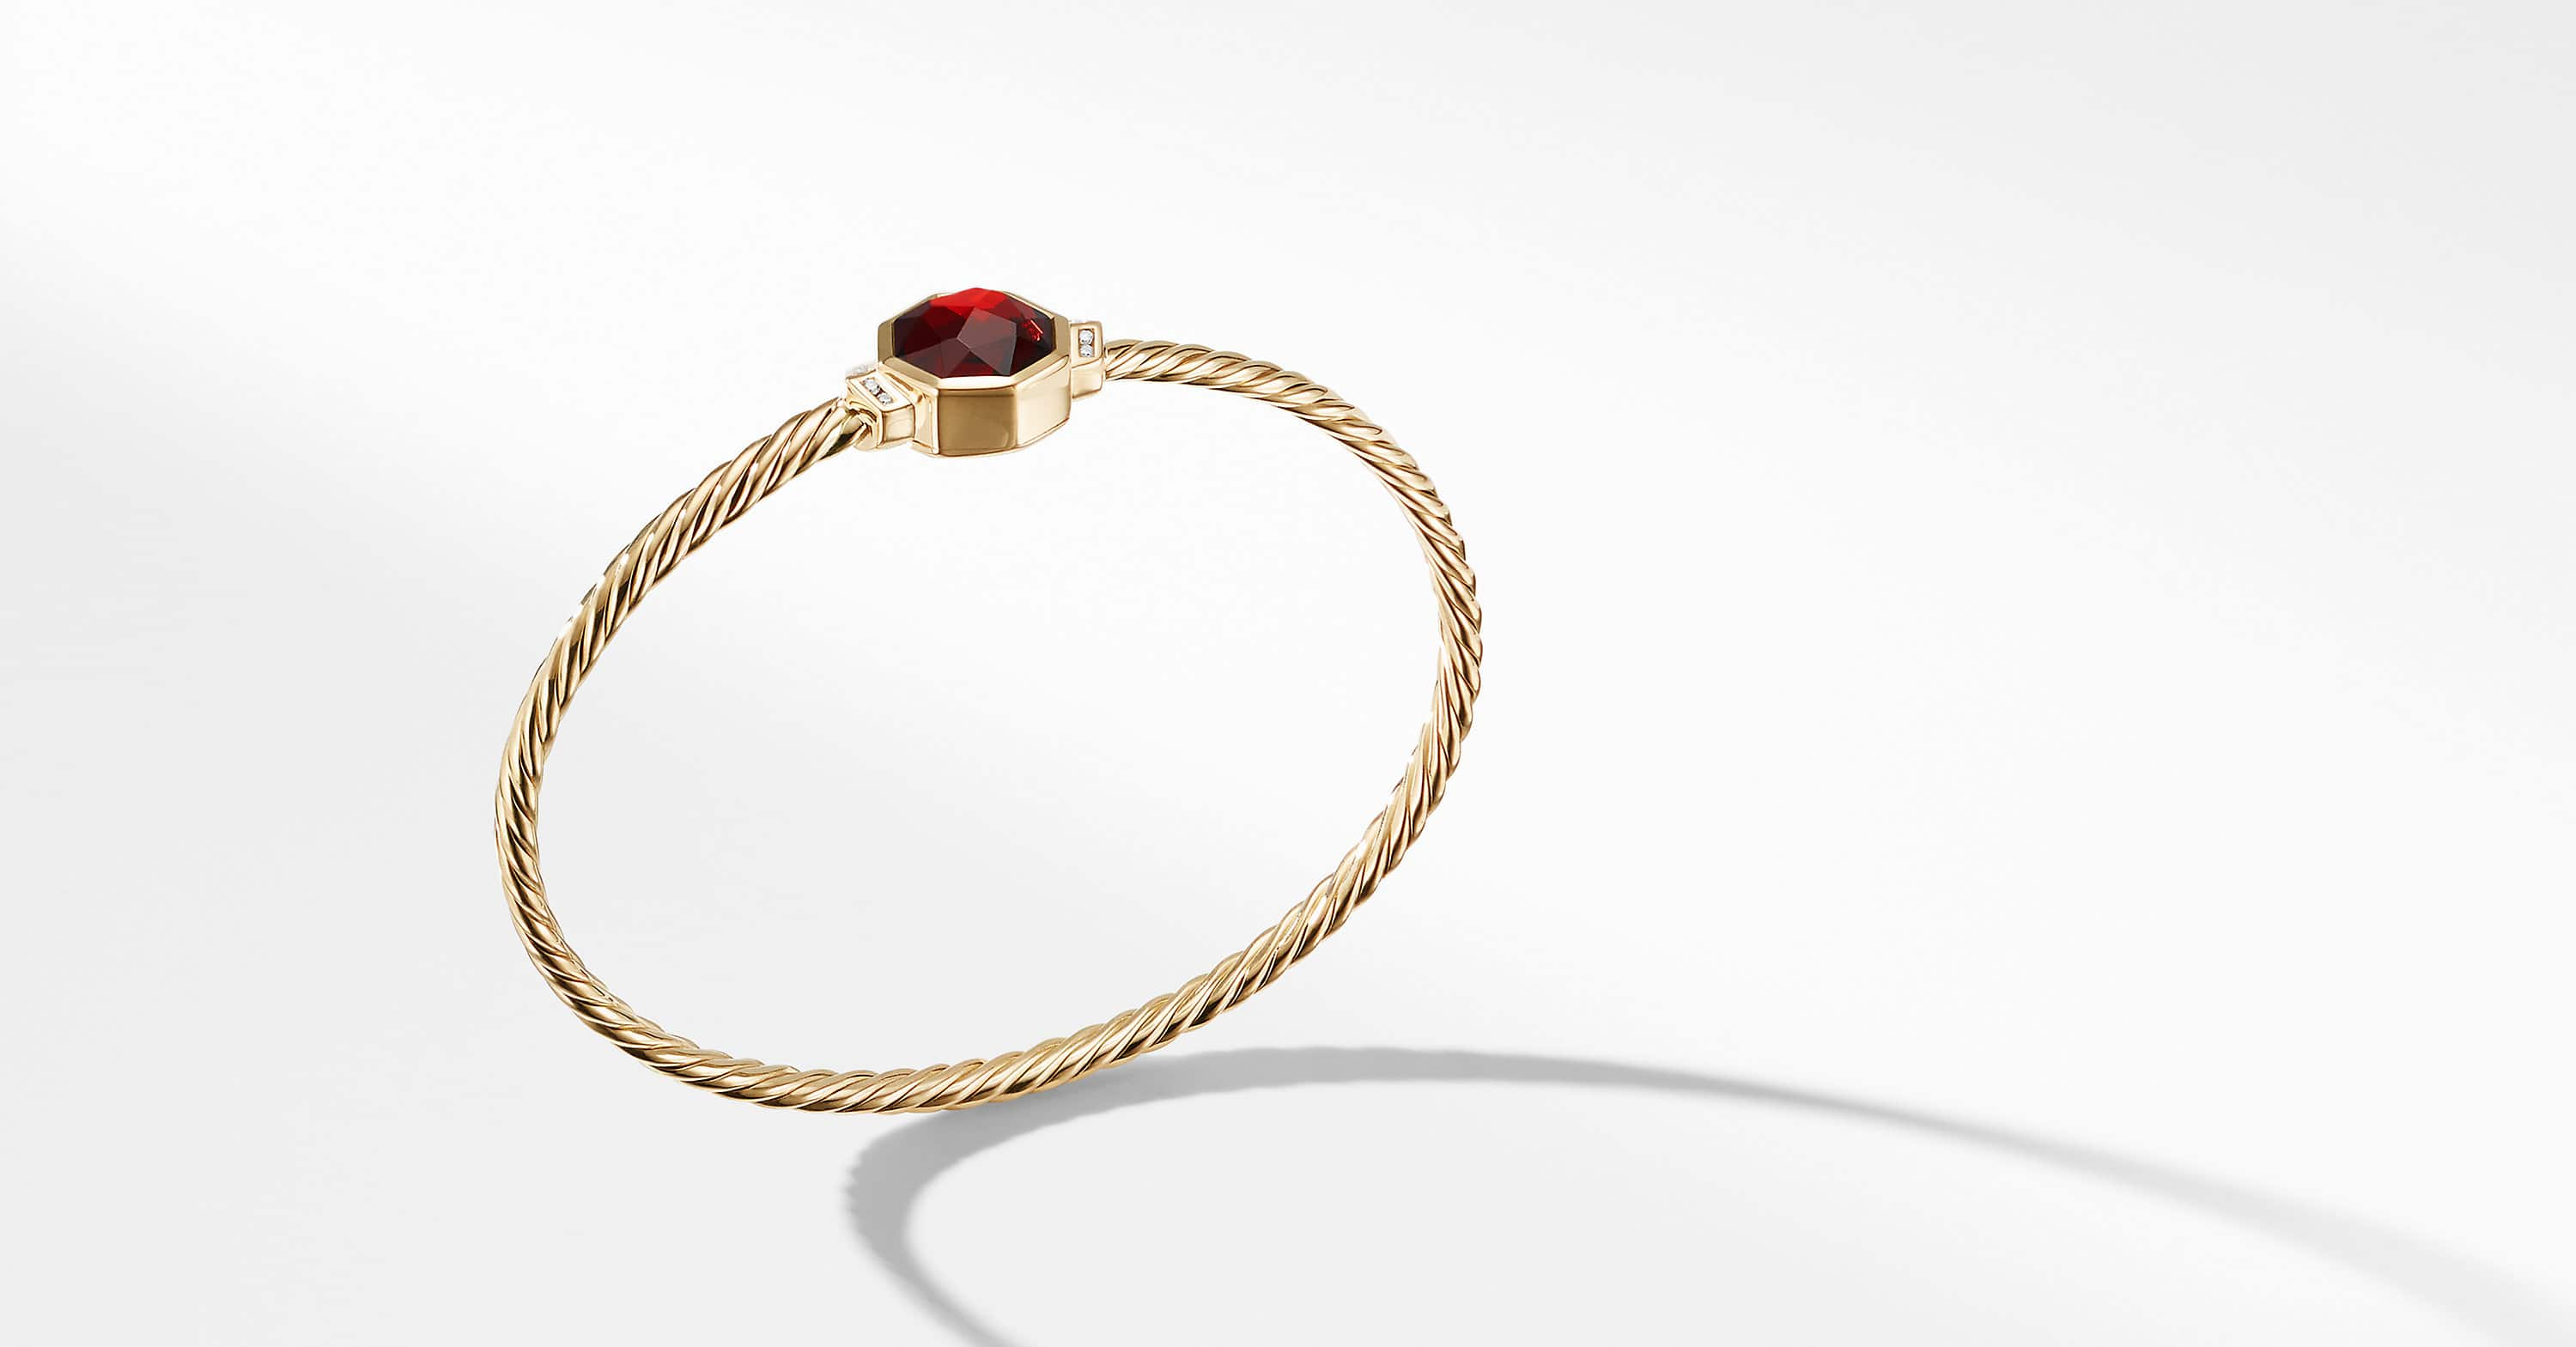 Guilin Octagon Bracelet with Diamonds in 18K Gold, 4mm